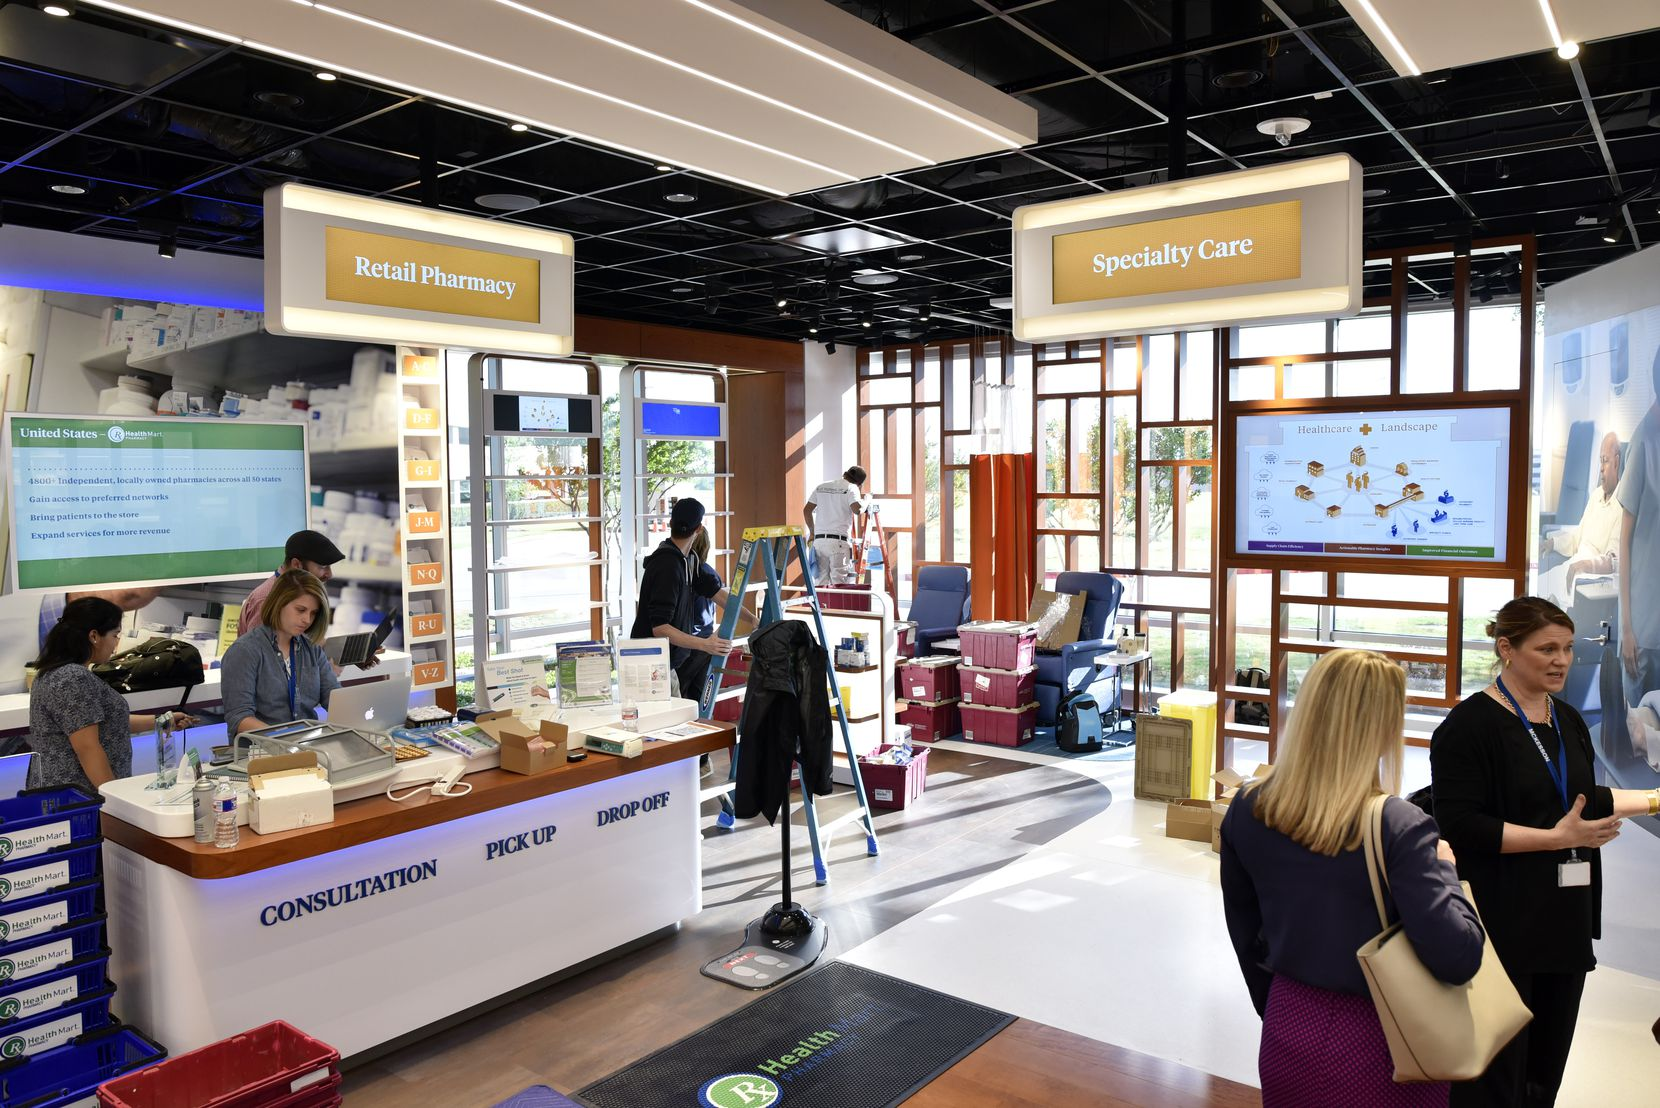 McKesson's campus in Irving has a museum-like display with models of a doctor's office, pharmacy counter and hospital room to demonstrate how the company helps keep pharmaceuticals and supplies in stock.